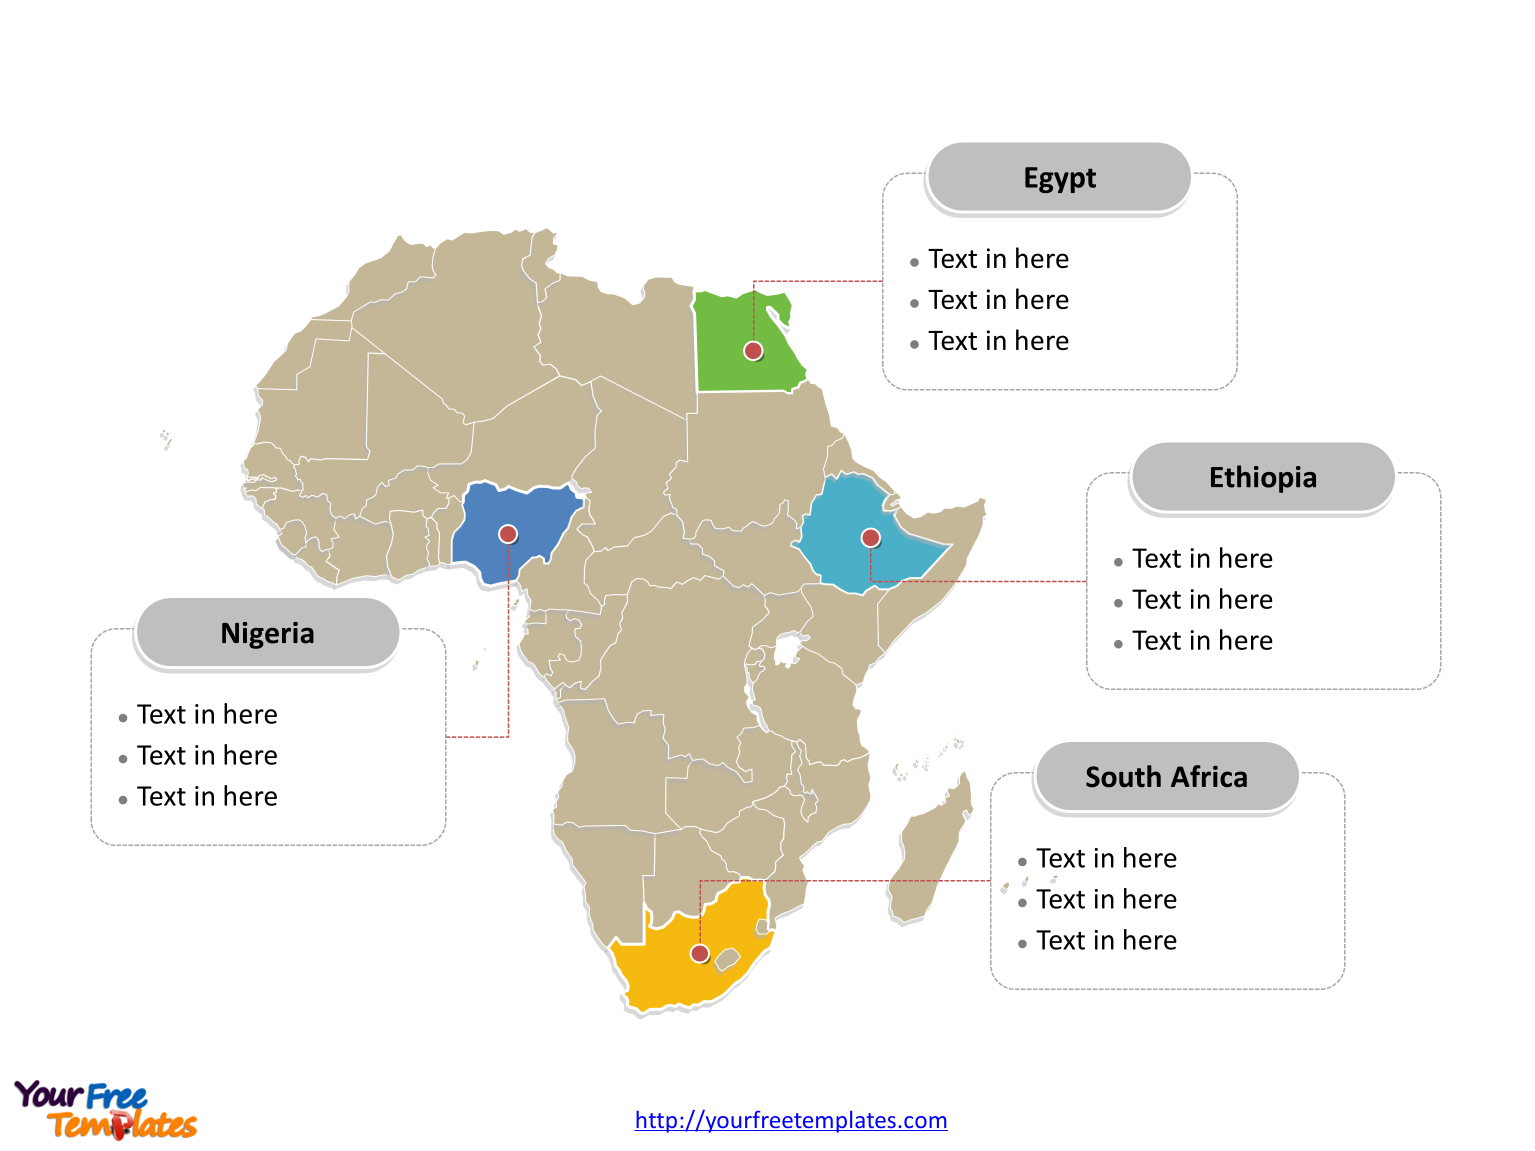 Map of africa free templates free powerpoint templates map of africa with political division and major countries labeled on the africa map free templates toneelgroepblik Gallery